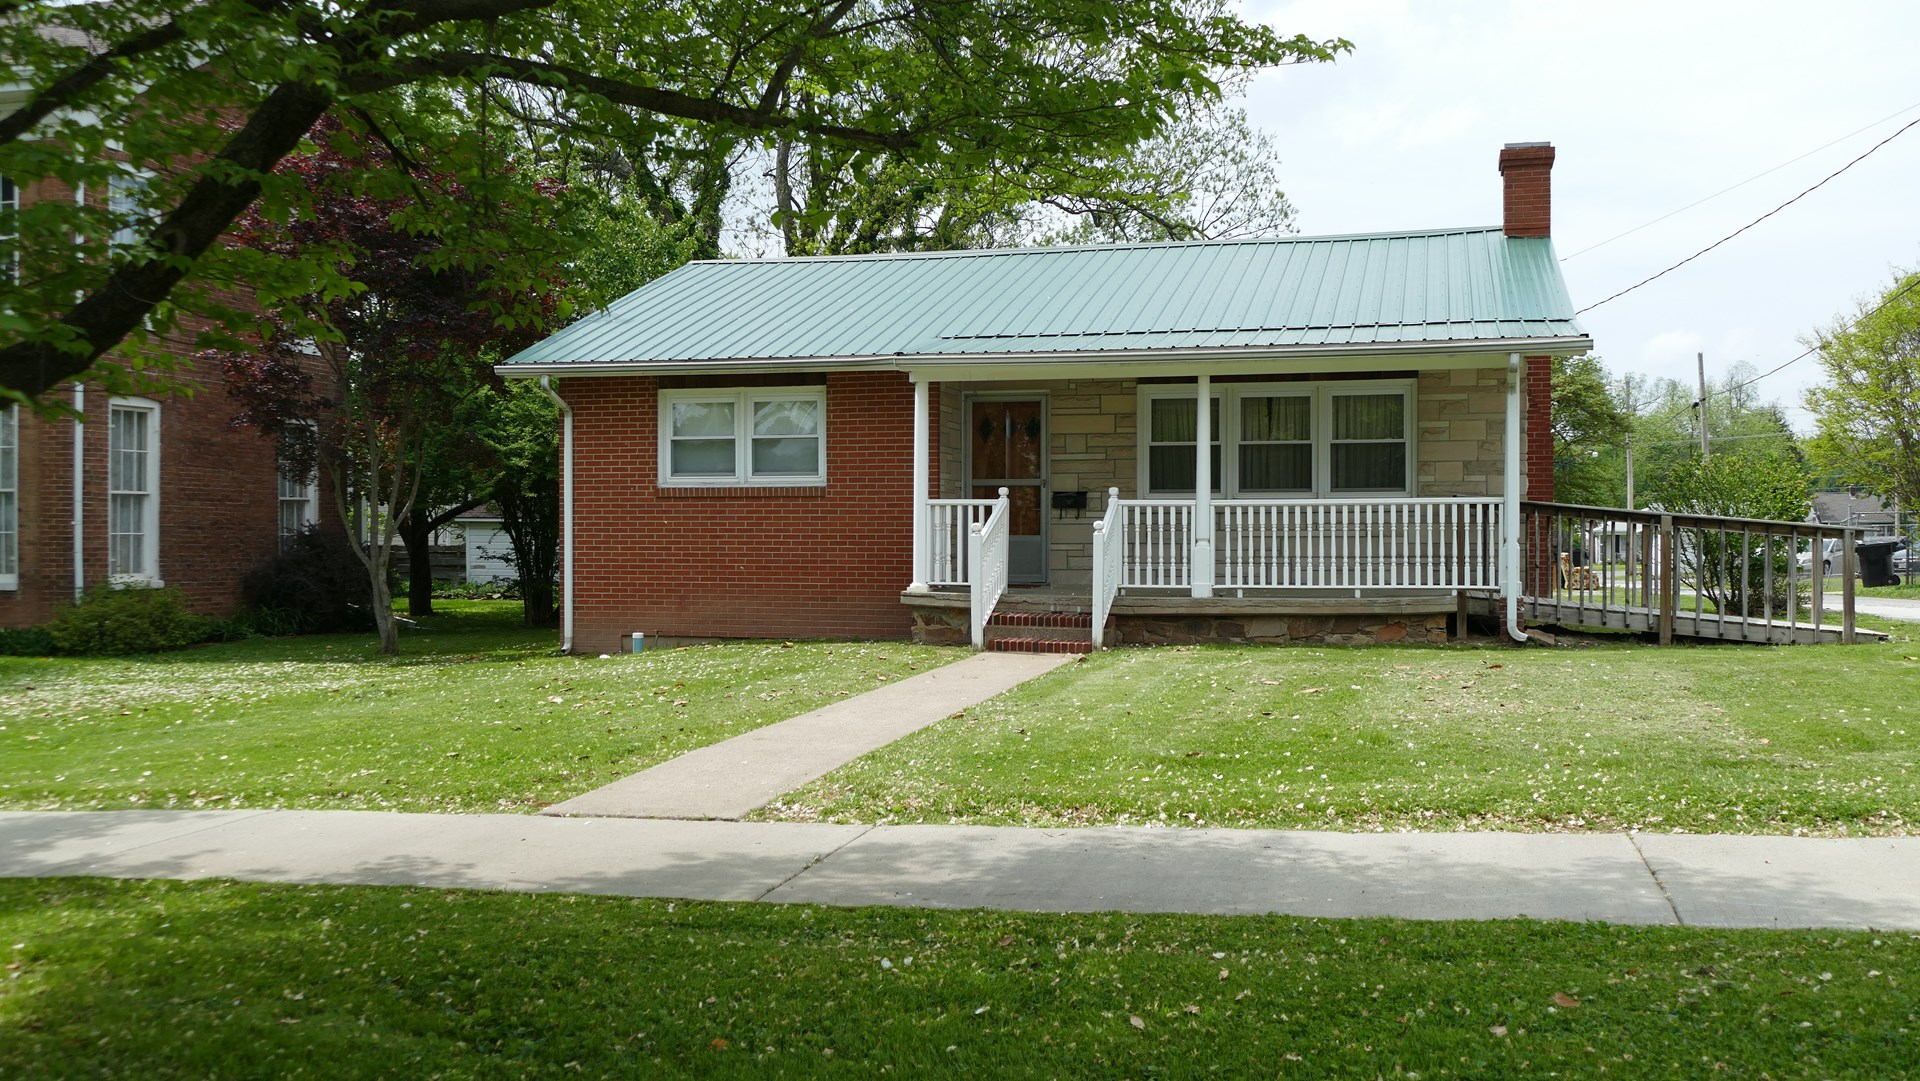 Brick Home For Sale - Metropolis, IL